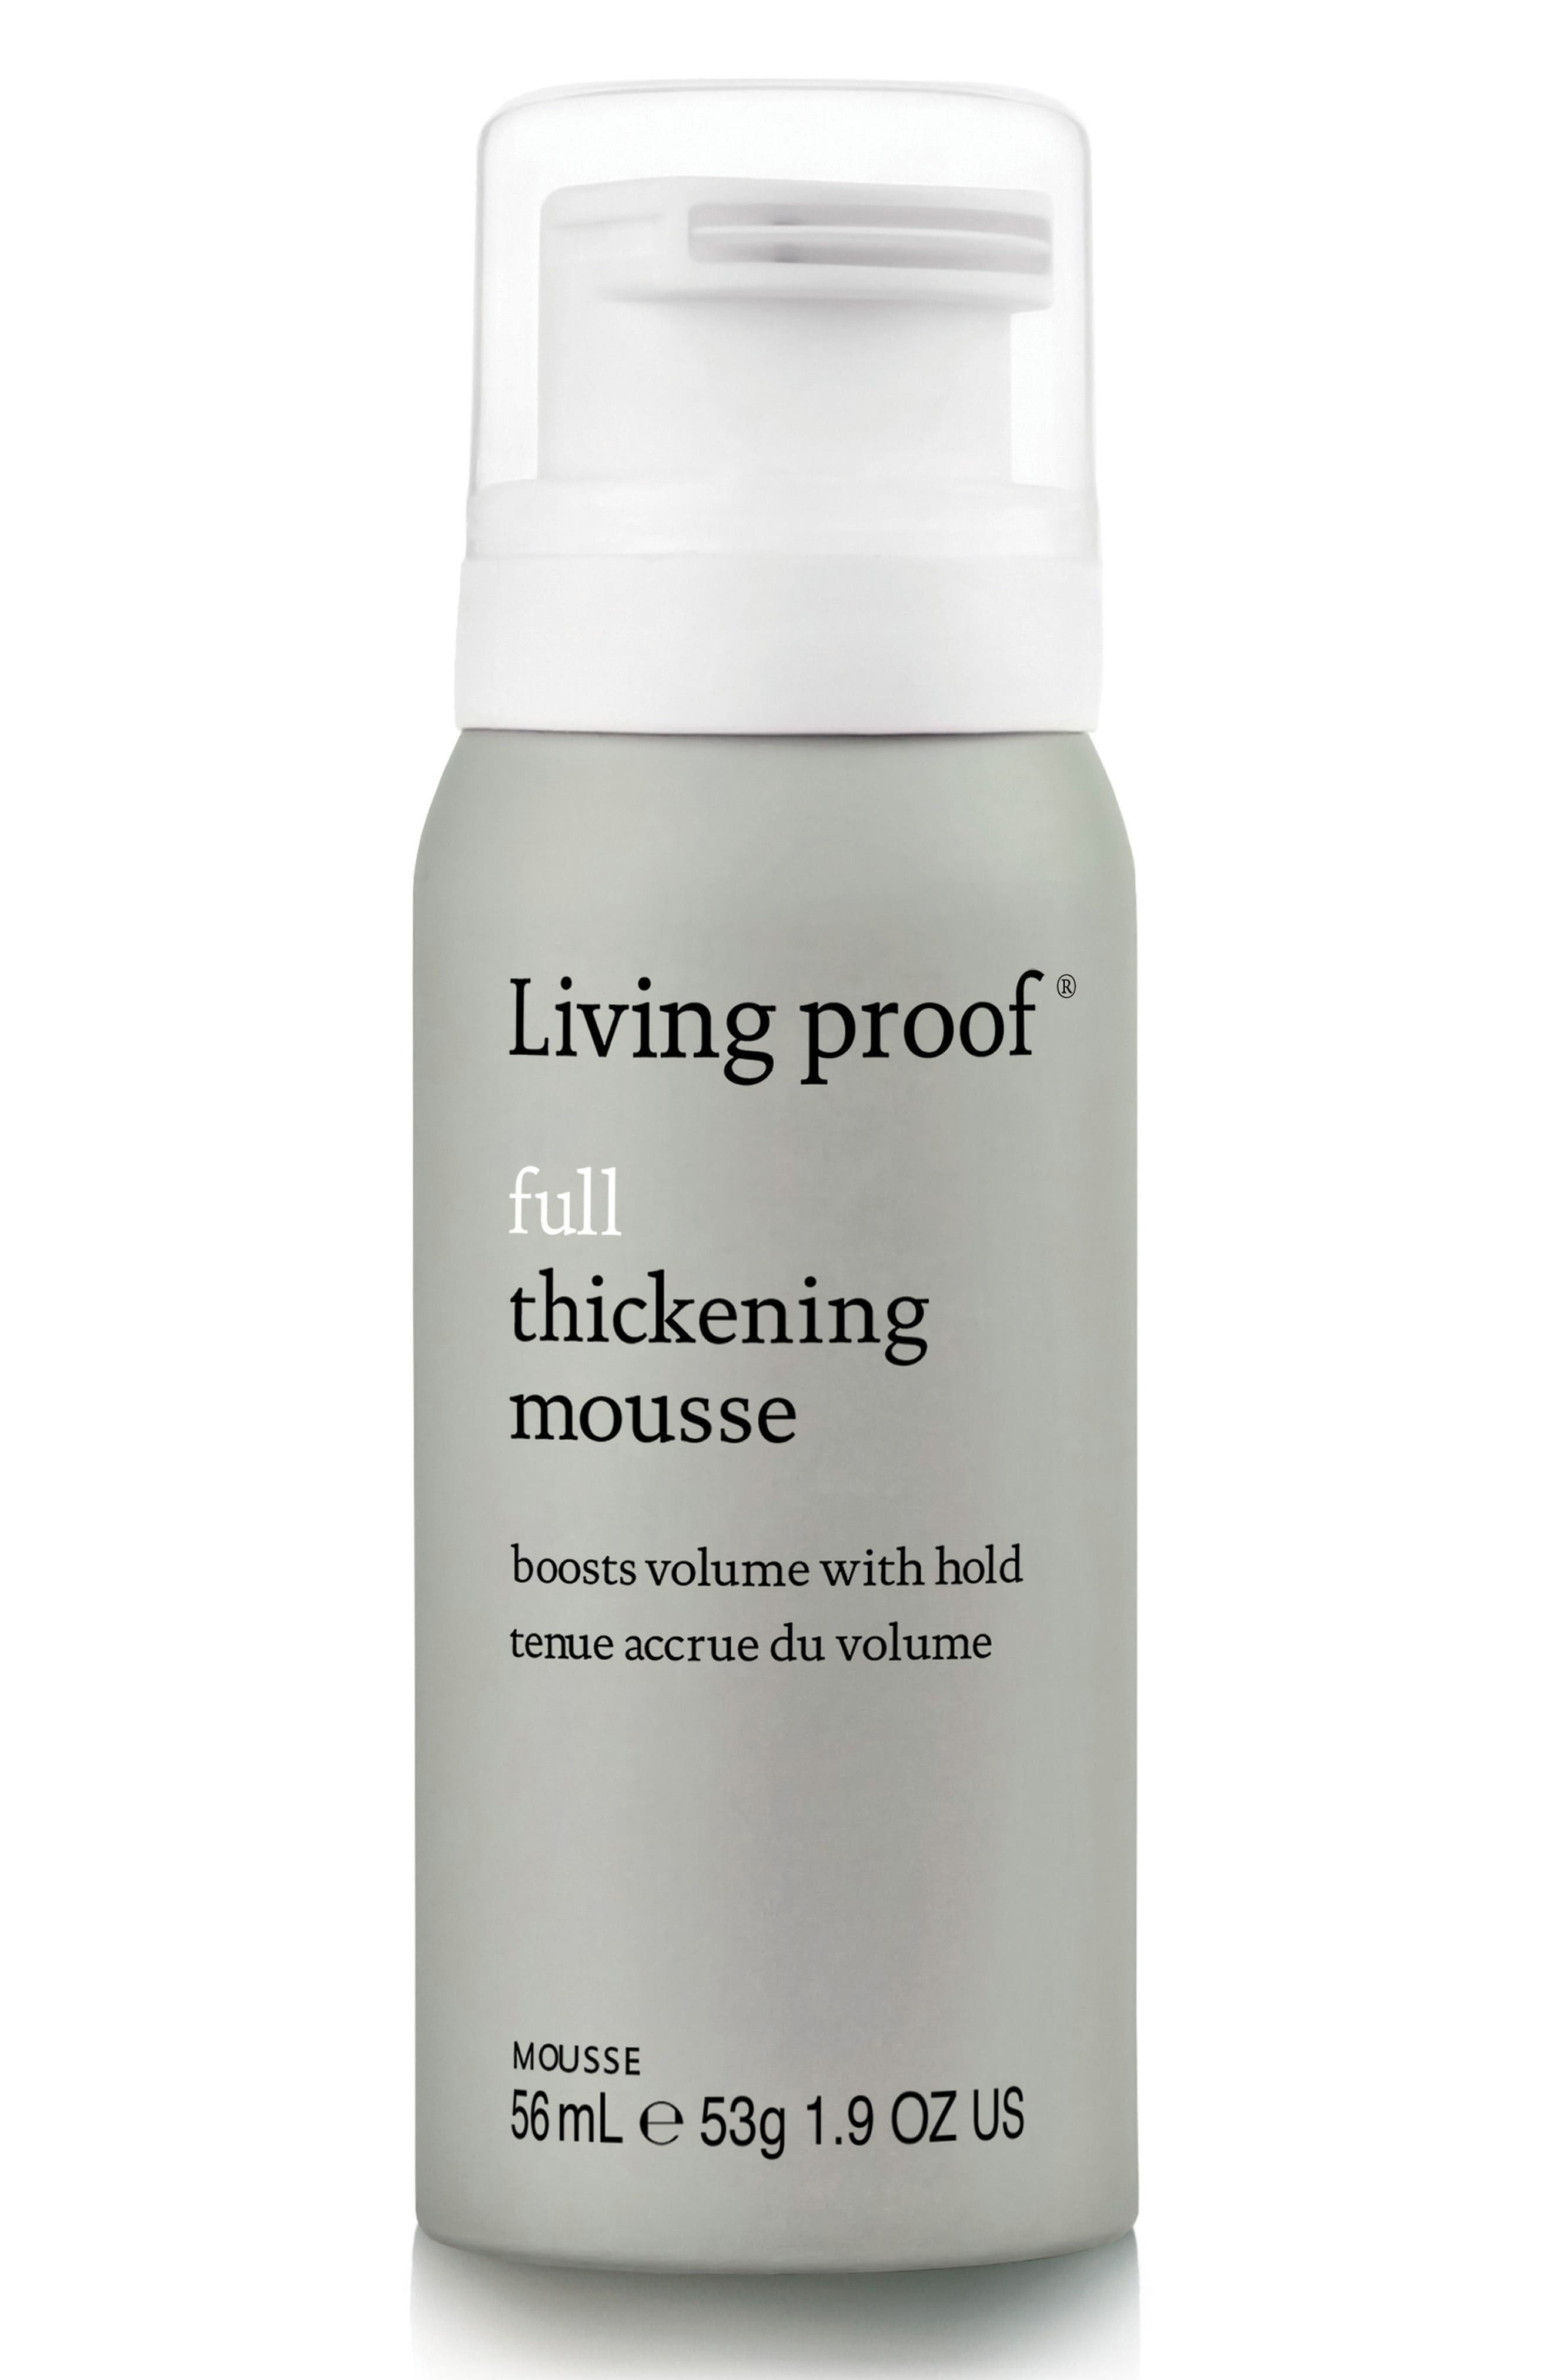 Alternate Image 1 Selected - Living proof® Full Thickening Mousse (1.9 oz.)